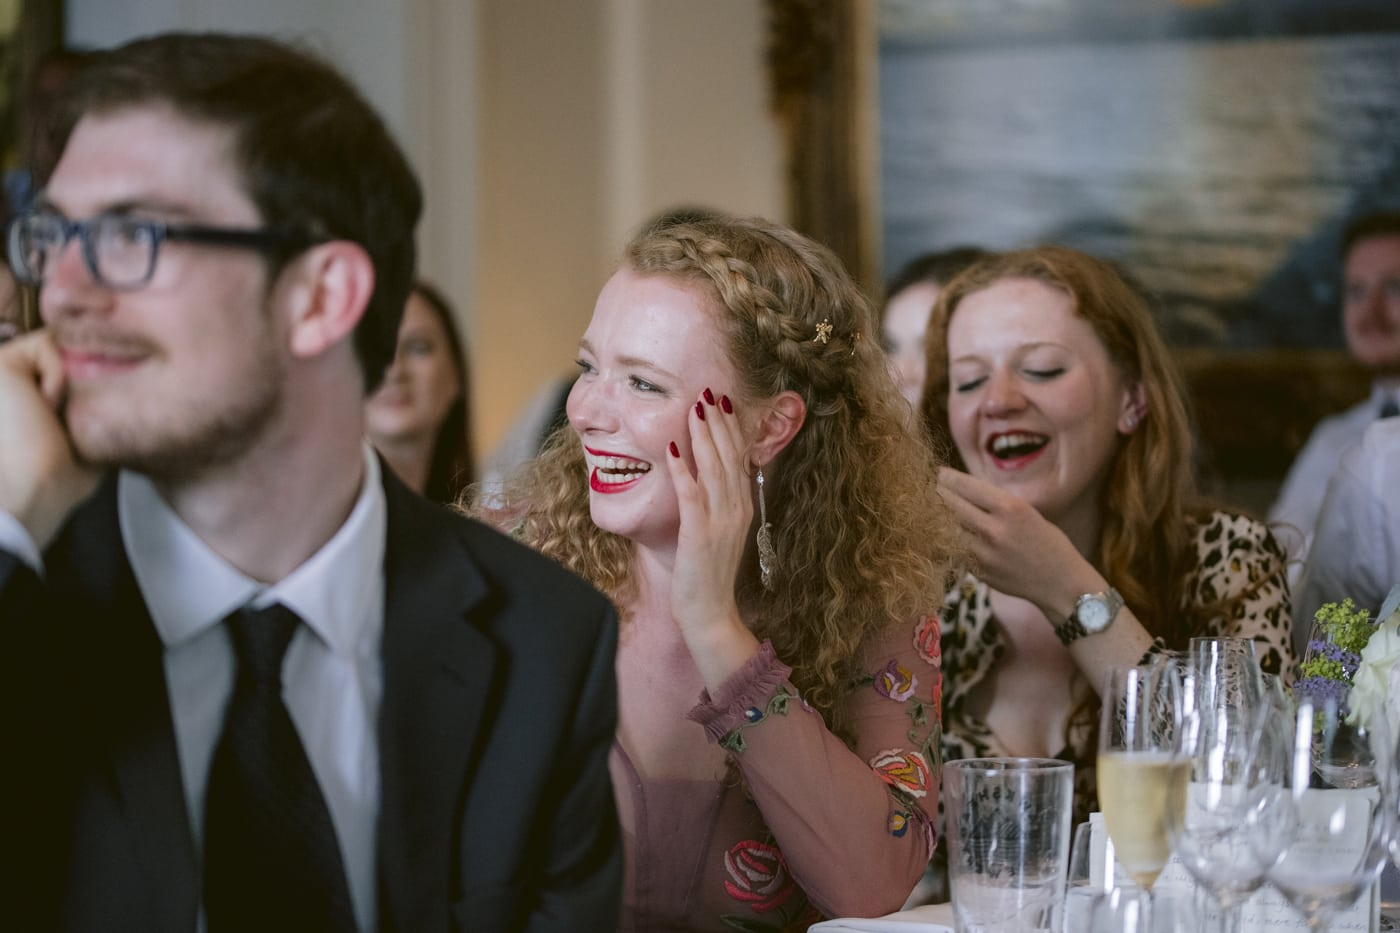 Guests Side View Portrait Laughing and Smiling Together at Storrs Hall Wedding